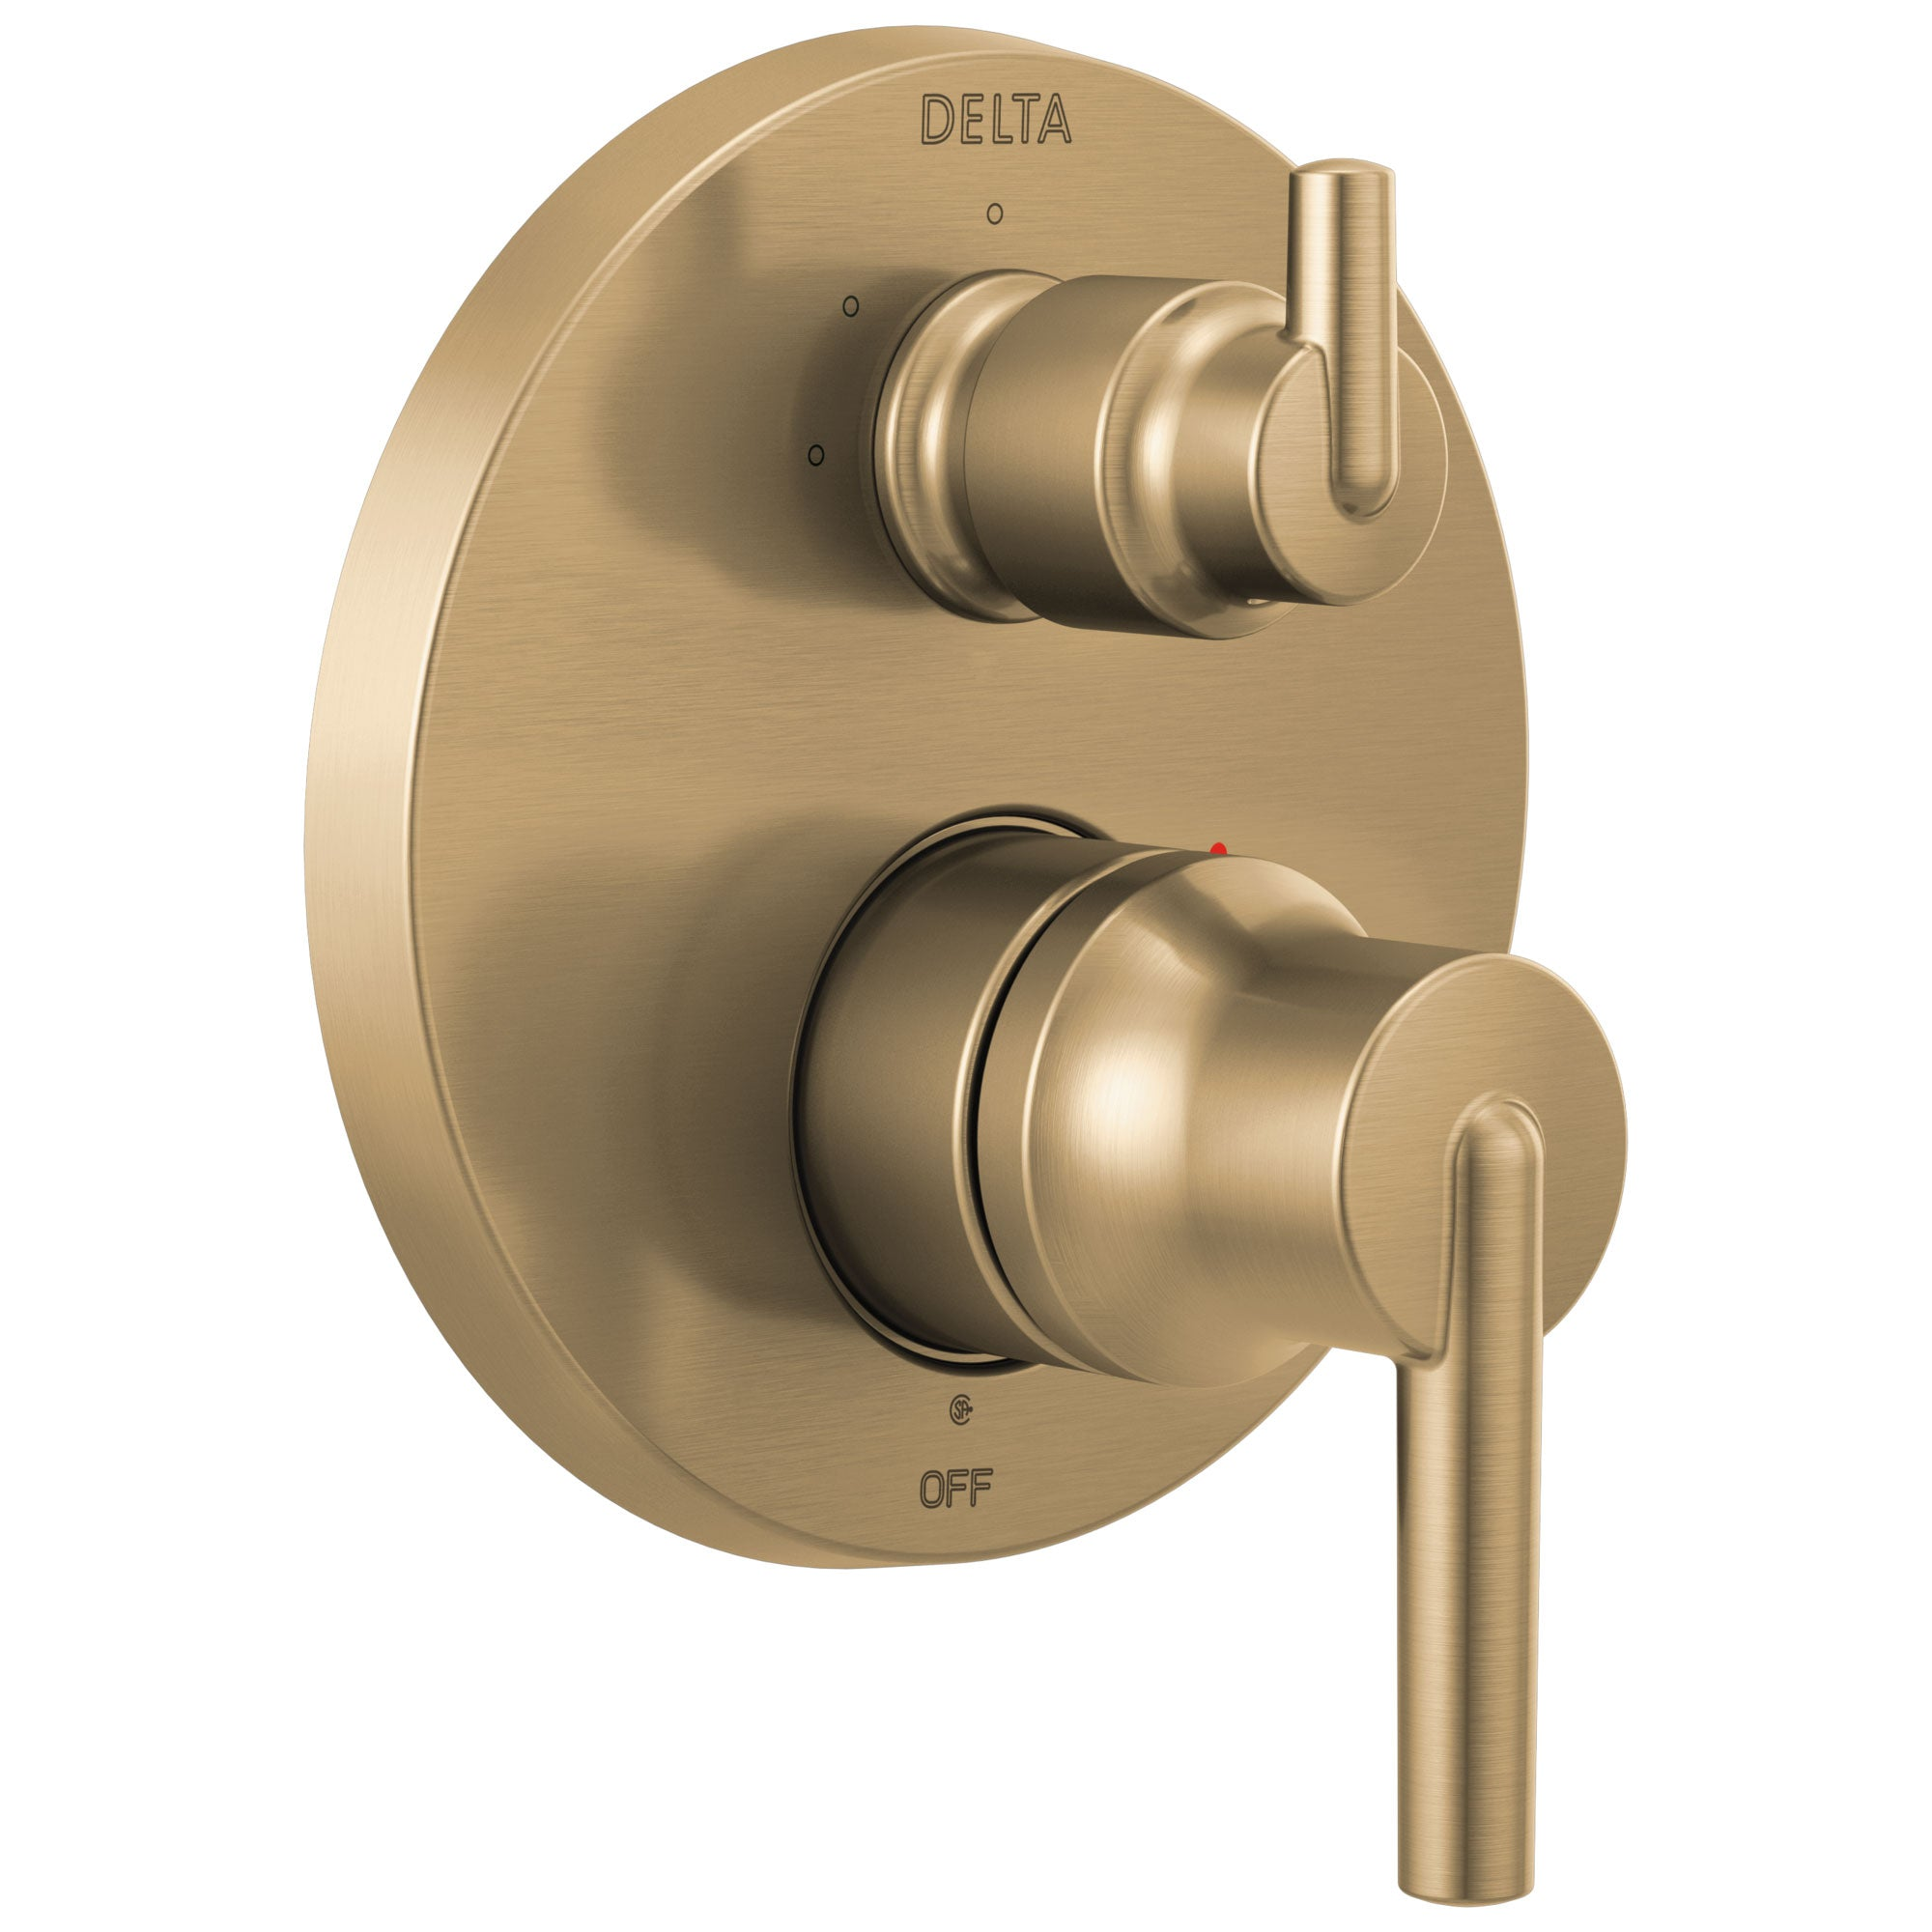 Delta Trinsic Champagne Bronze Finish Contemporary Monitor 14 Series Shower Control Trim Kit with 3-Setting Integrated Diverter (Requires Valve) DT24859CZ